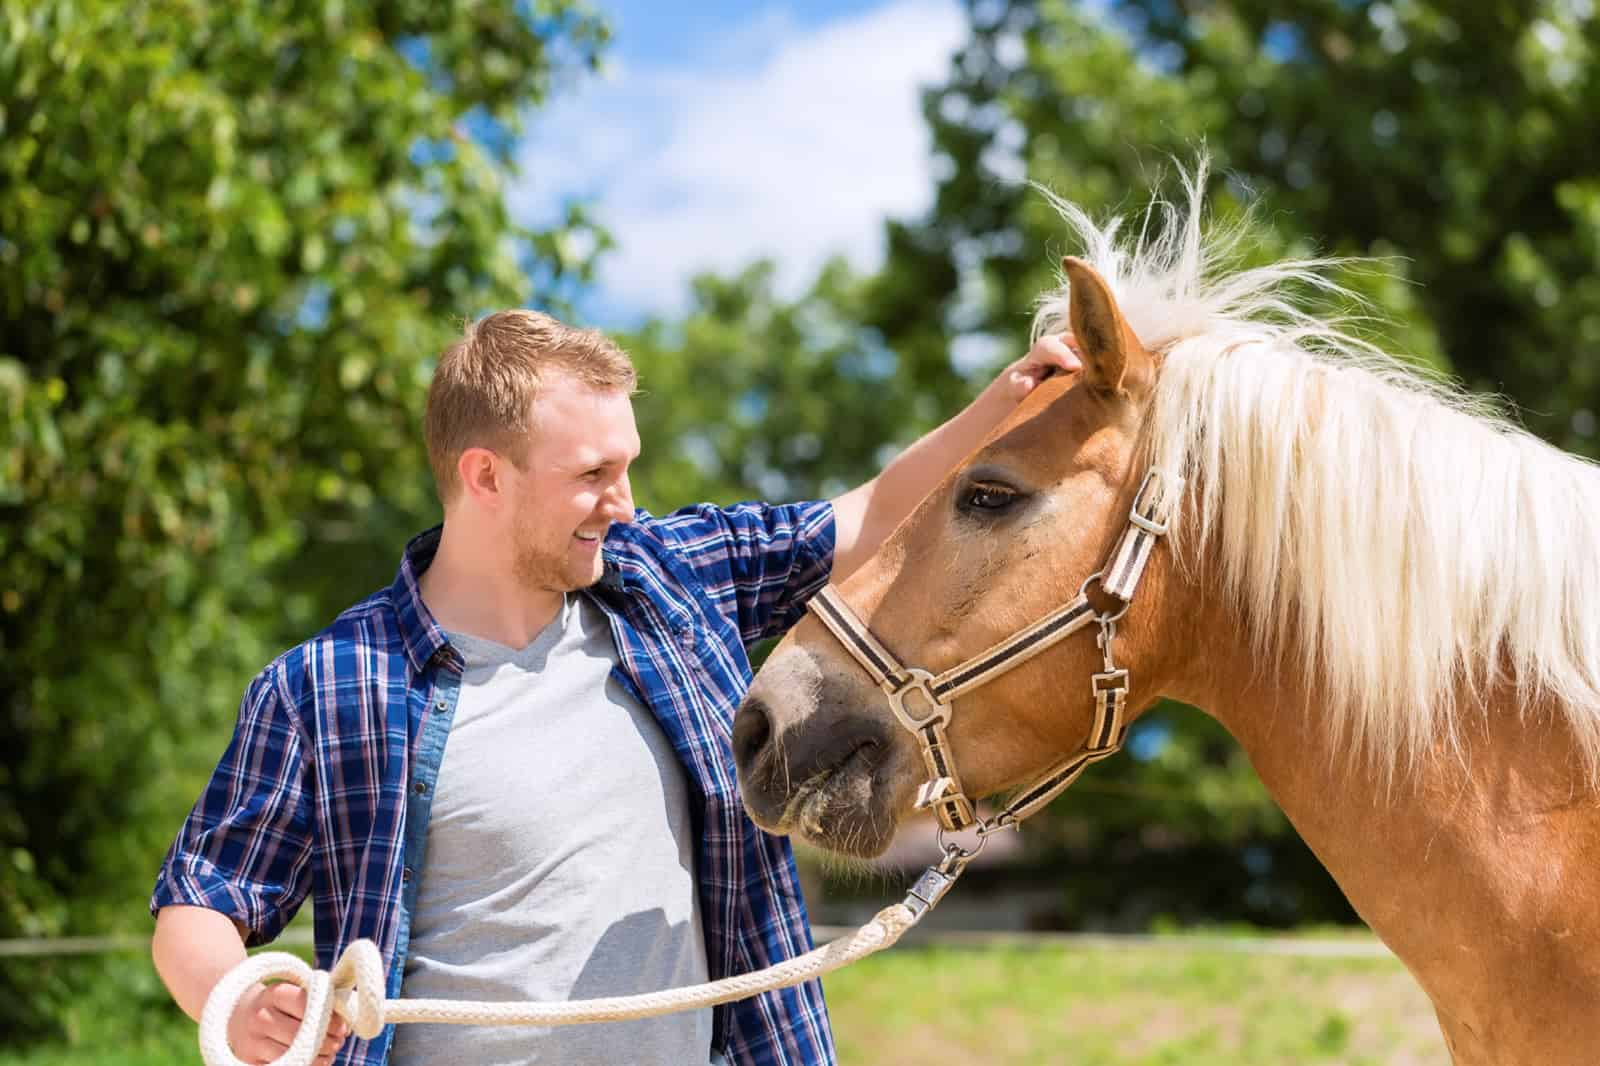 horses can smell fear